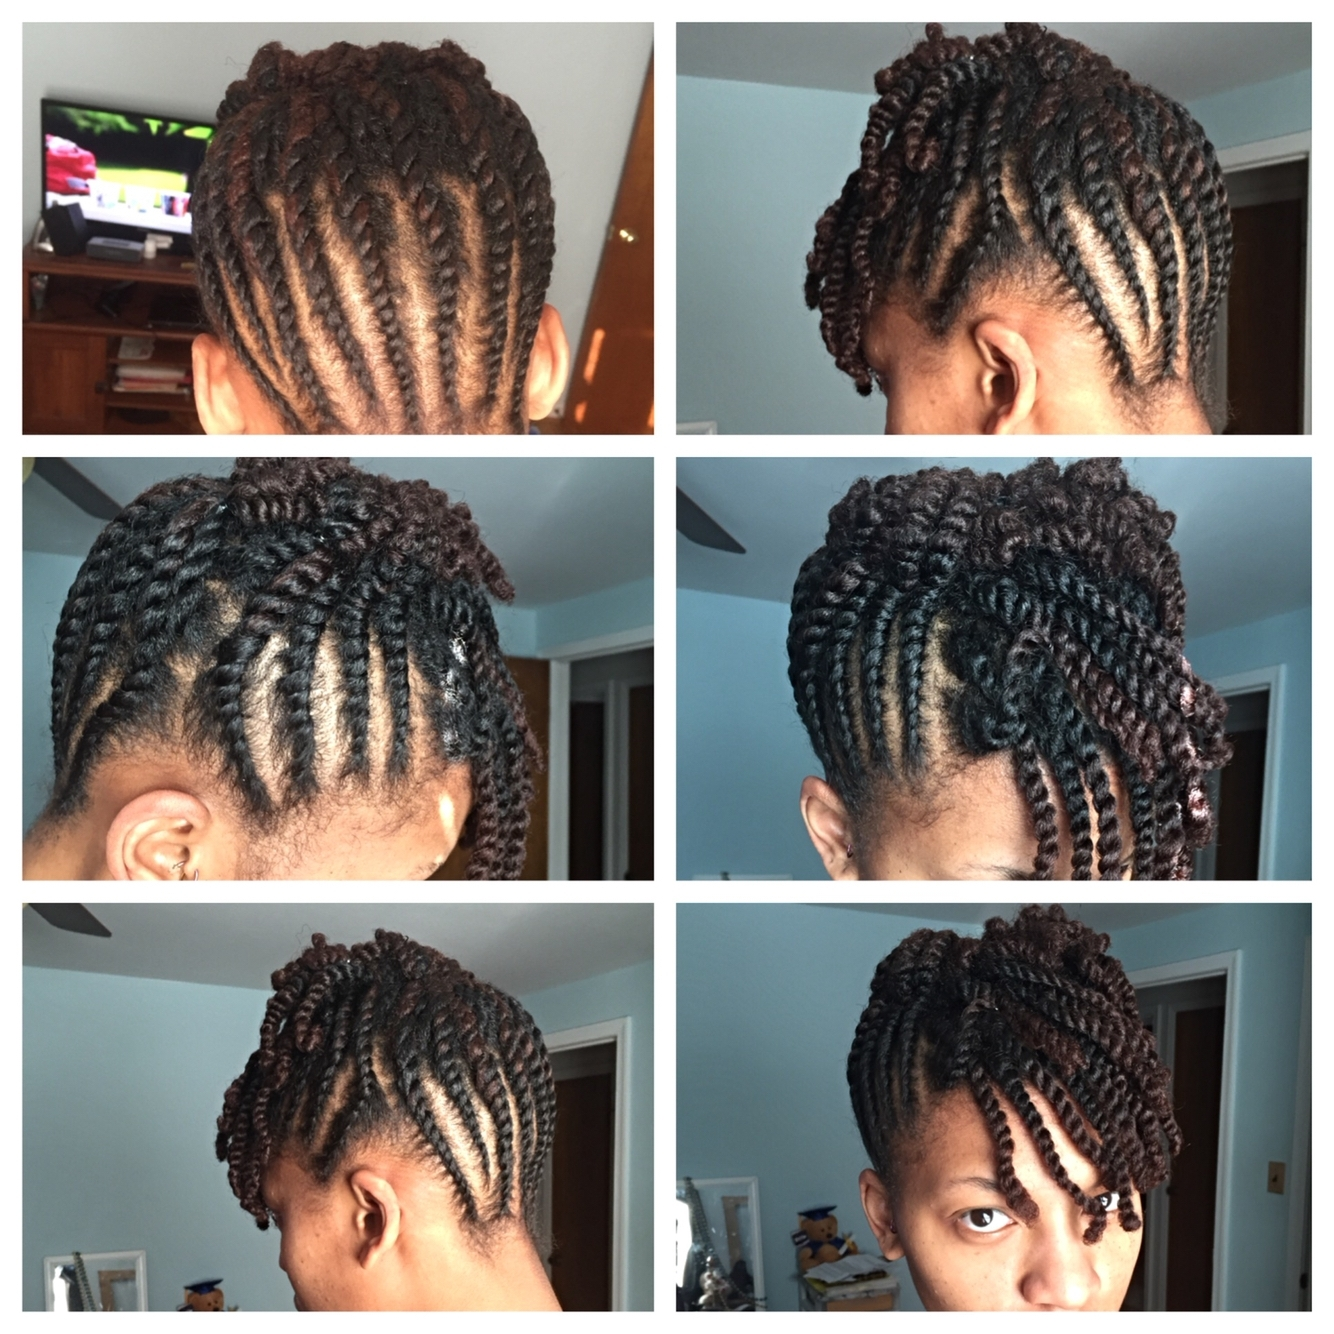 Flat Twist Updo With A Two Strand Twist Bang | Natural Hair Styles Regarding 2 Strand Twist Updo Hairstyles (View 3 of 15)